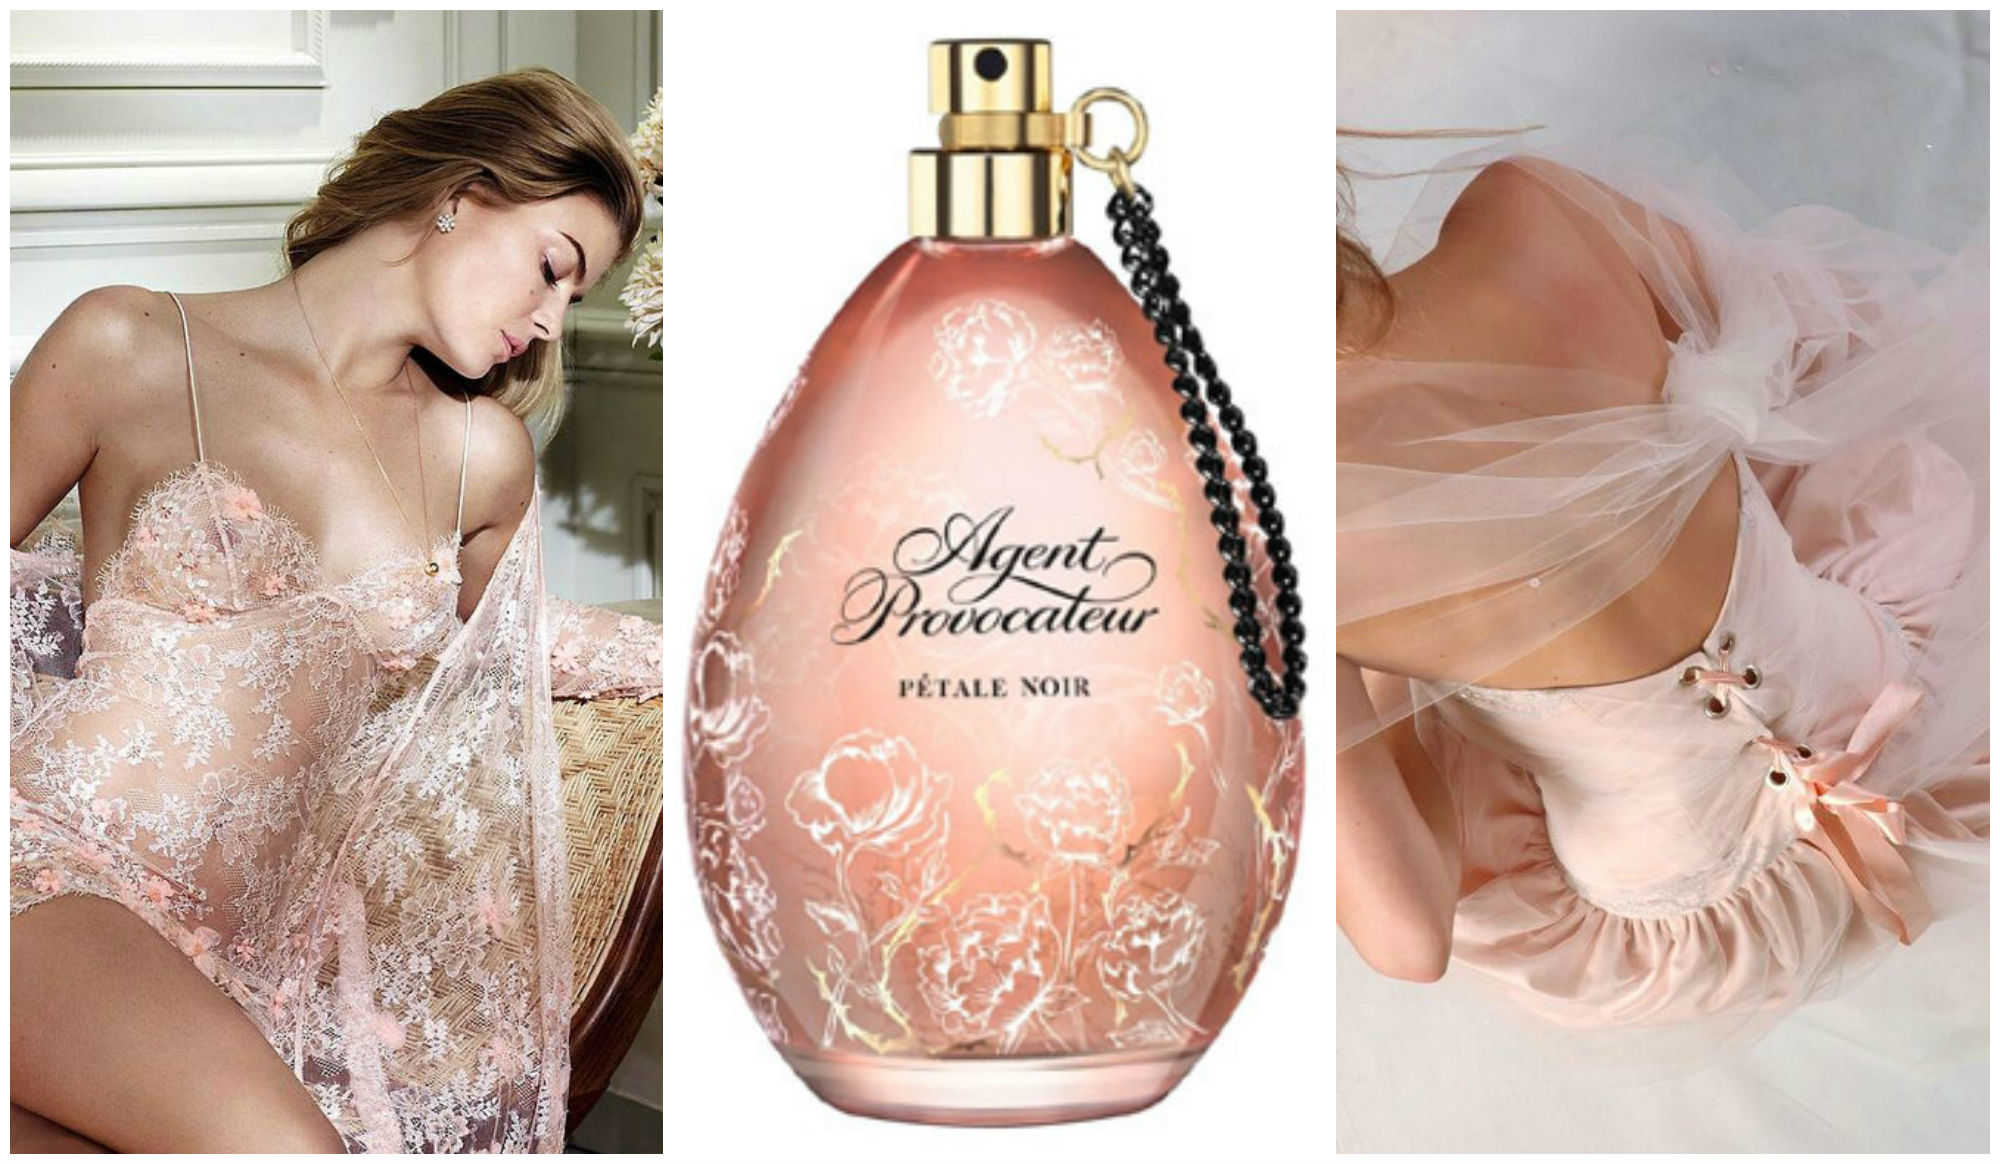 Perfume of the Day: Agent Provocateur Petale Noir